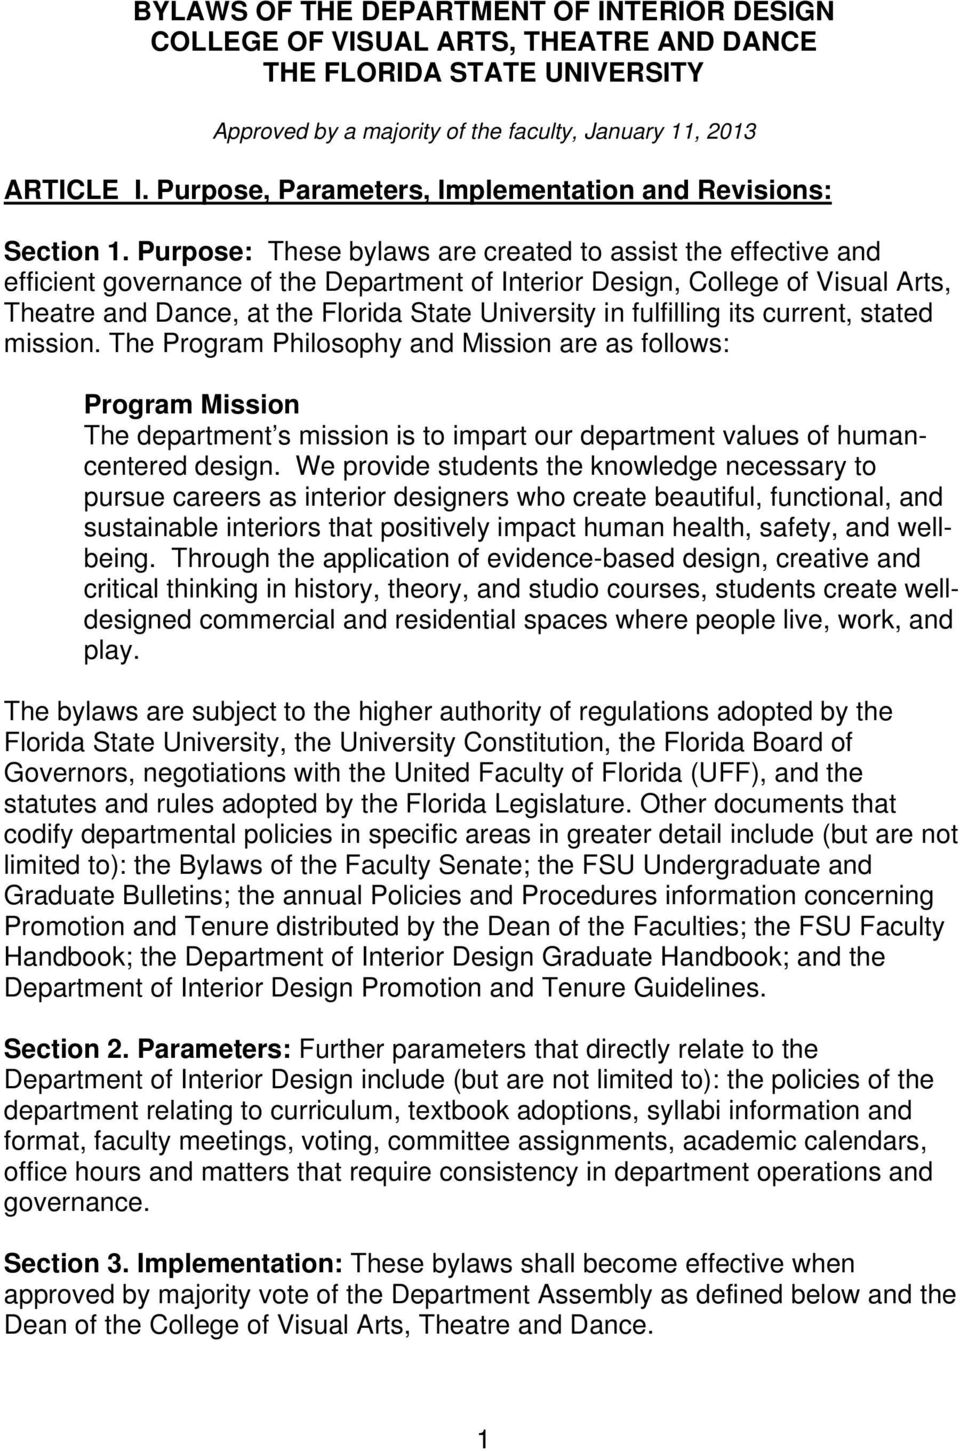 Purpose: These bylaws are created to assist the effective and efficient governance of the Department of Interior Design, College of Visual Arts, Theatre and Dance, at the Florida State University in